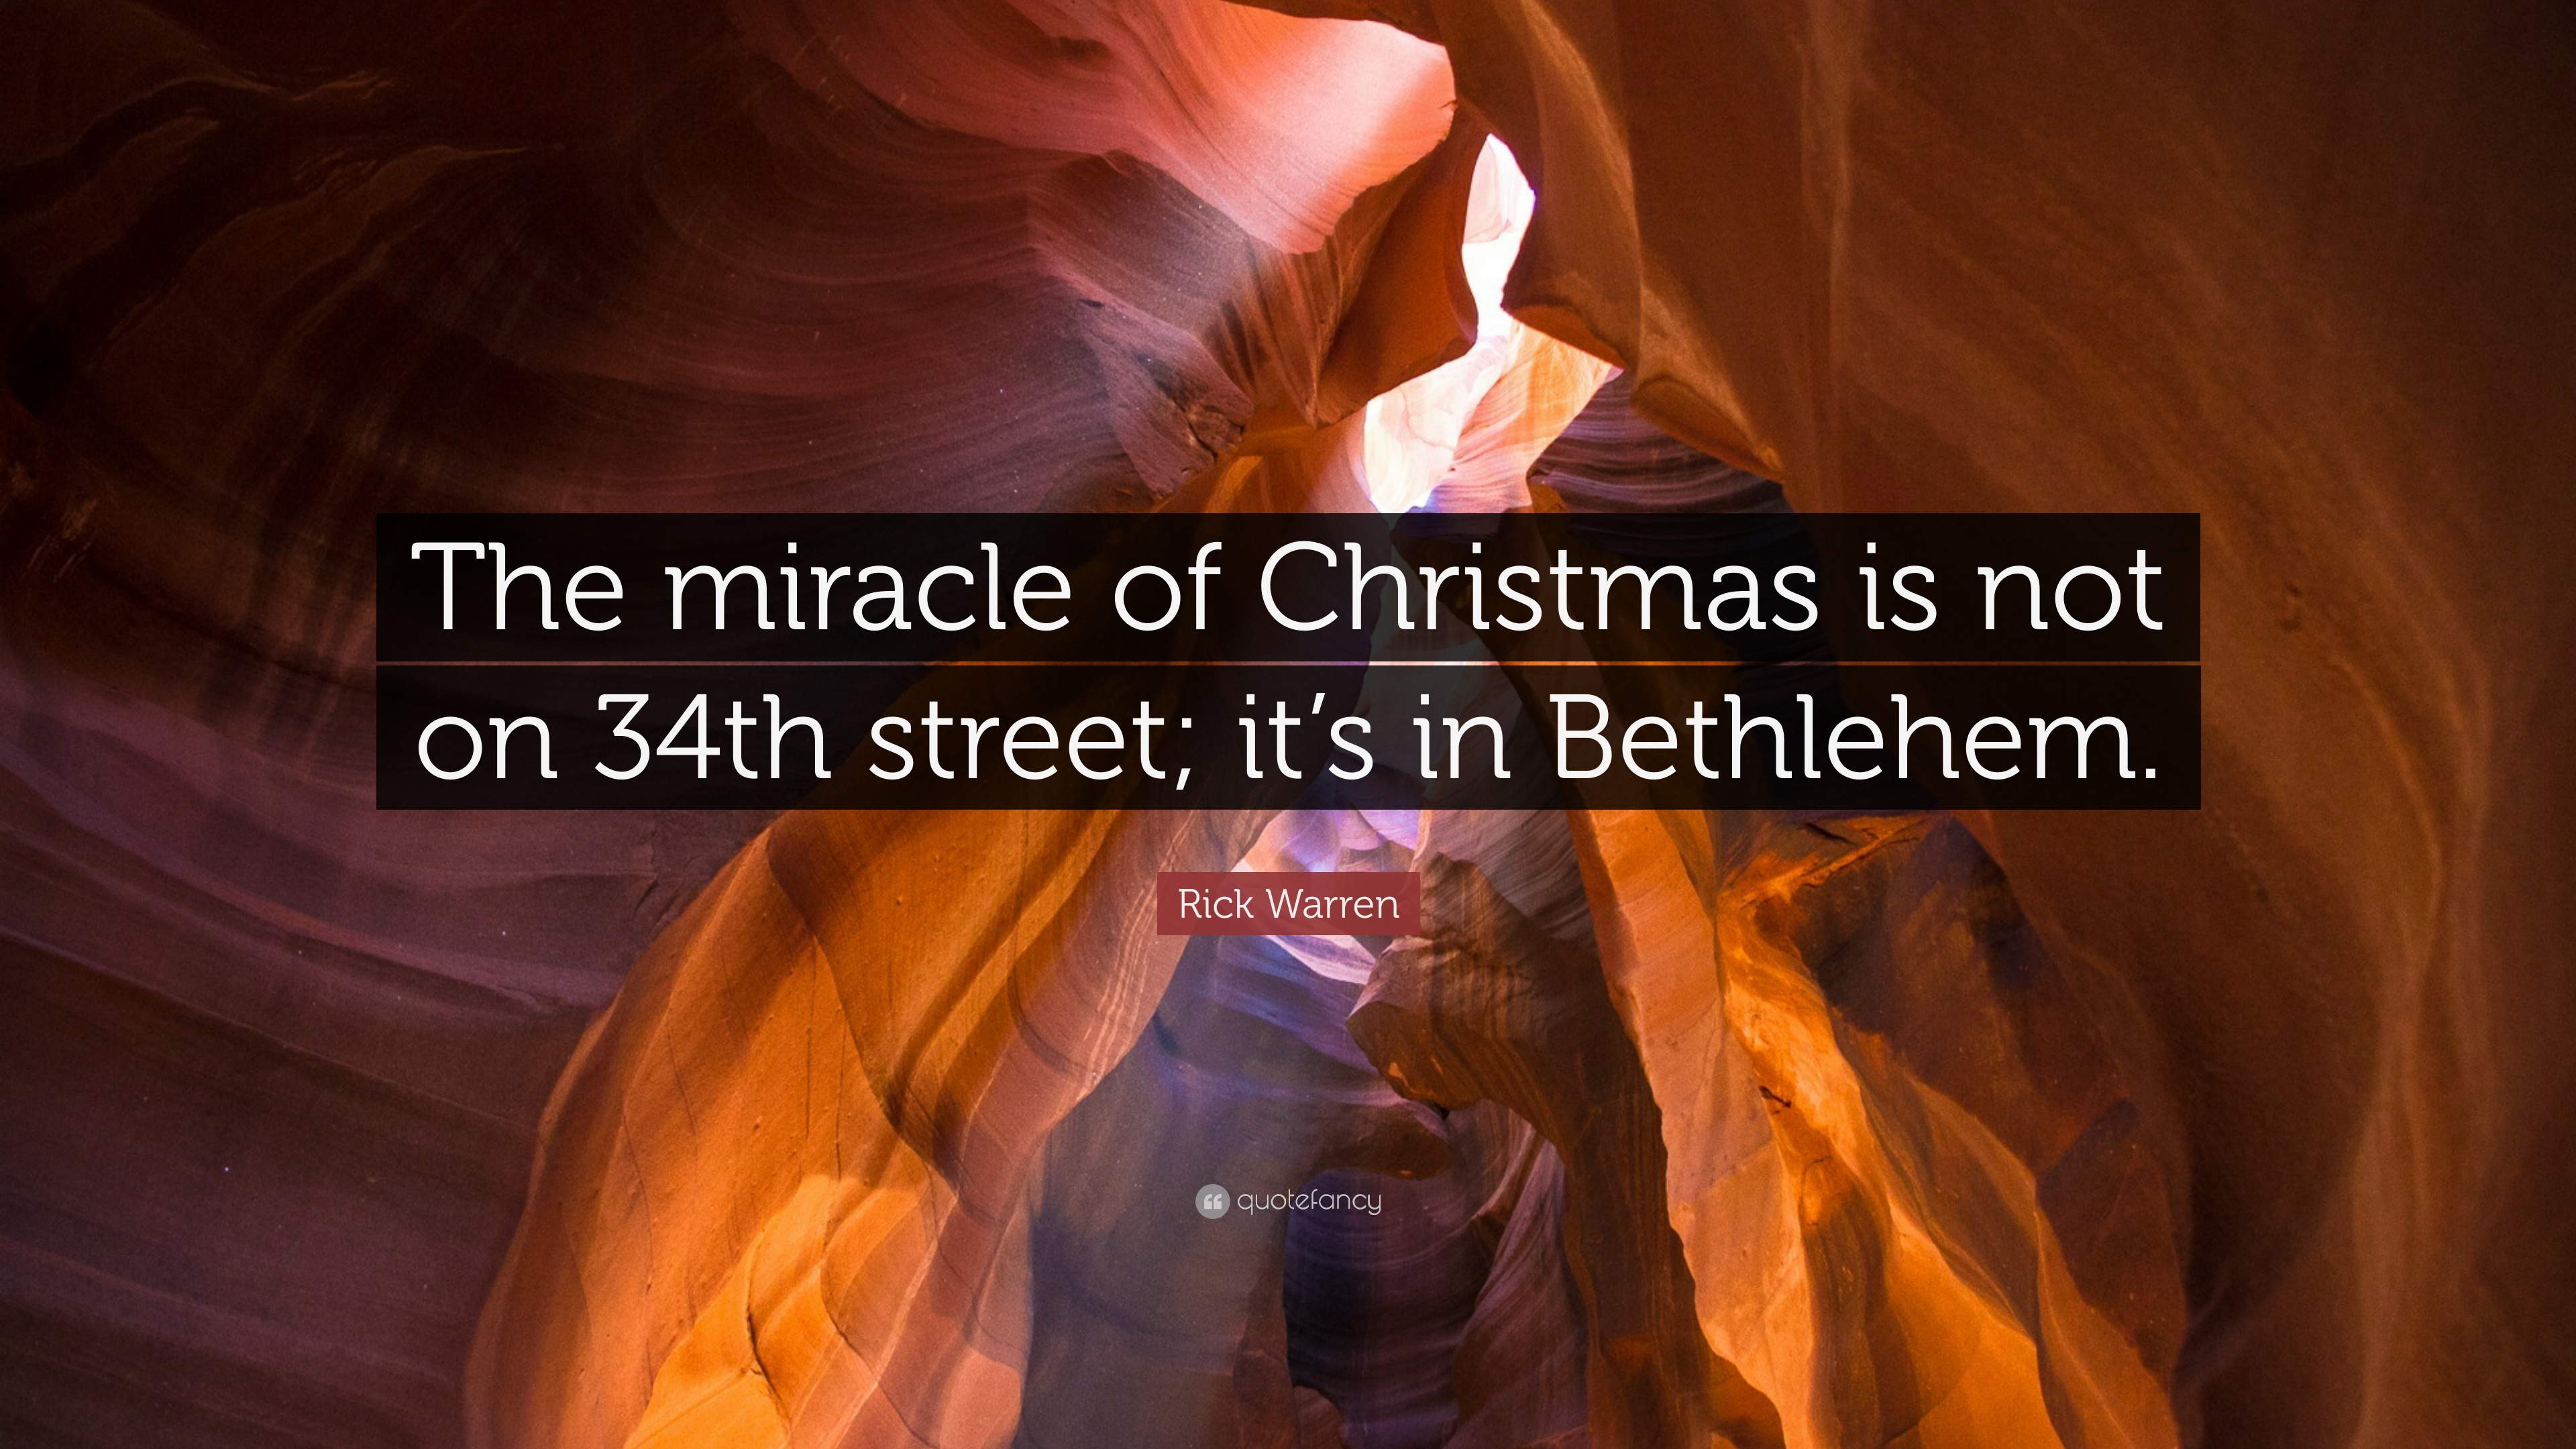 rick warren quote the miracle of christmas is not on 34th street its